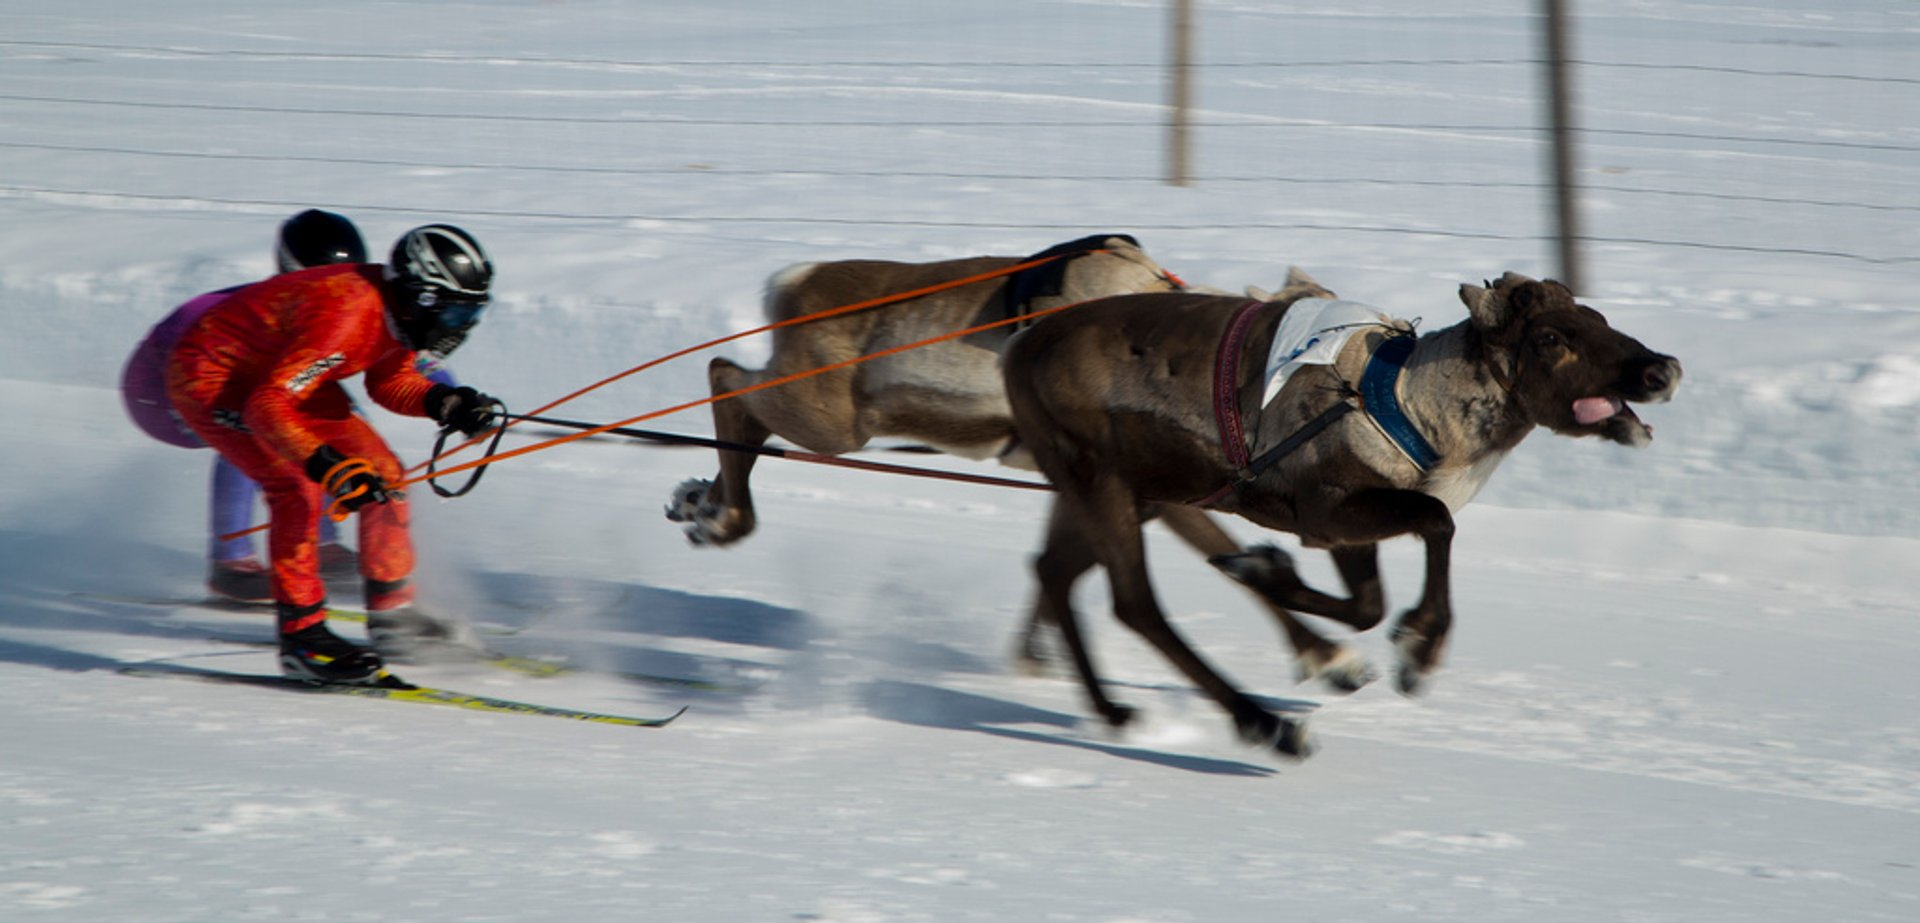 Best time to see World Reindeer Racing Championships